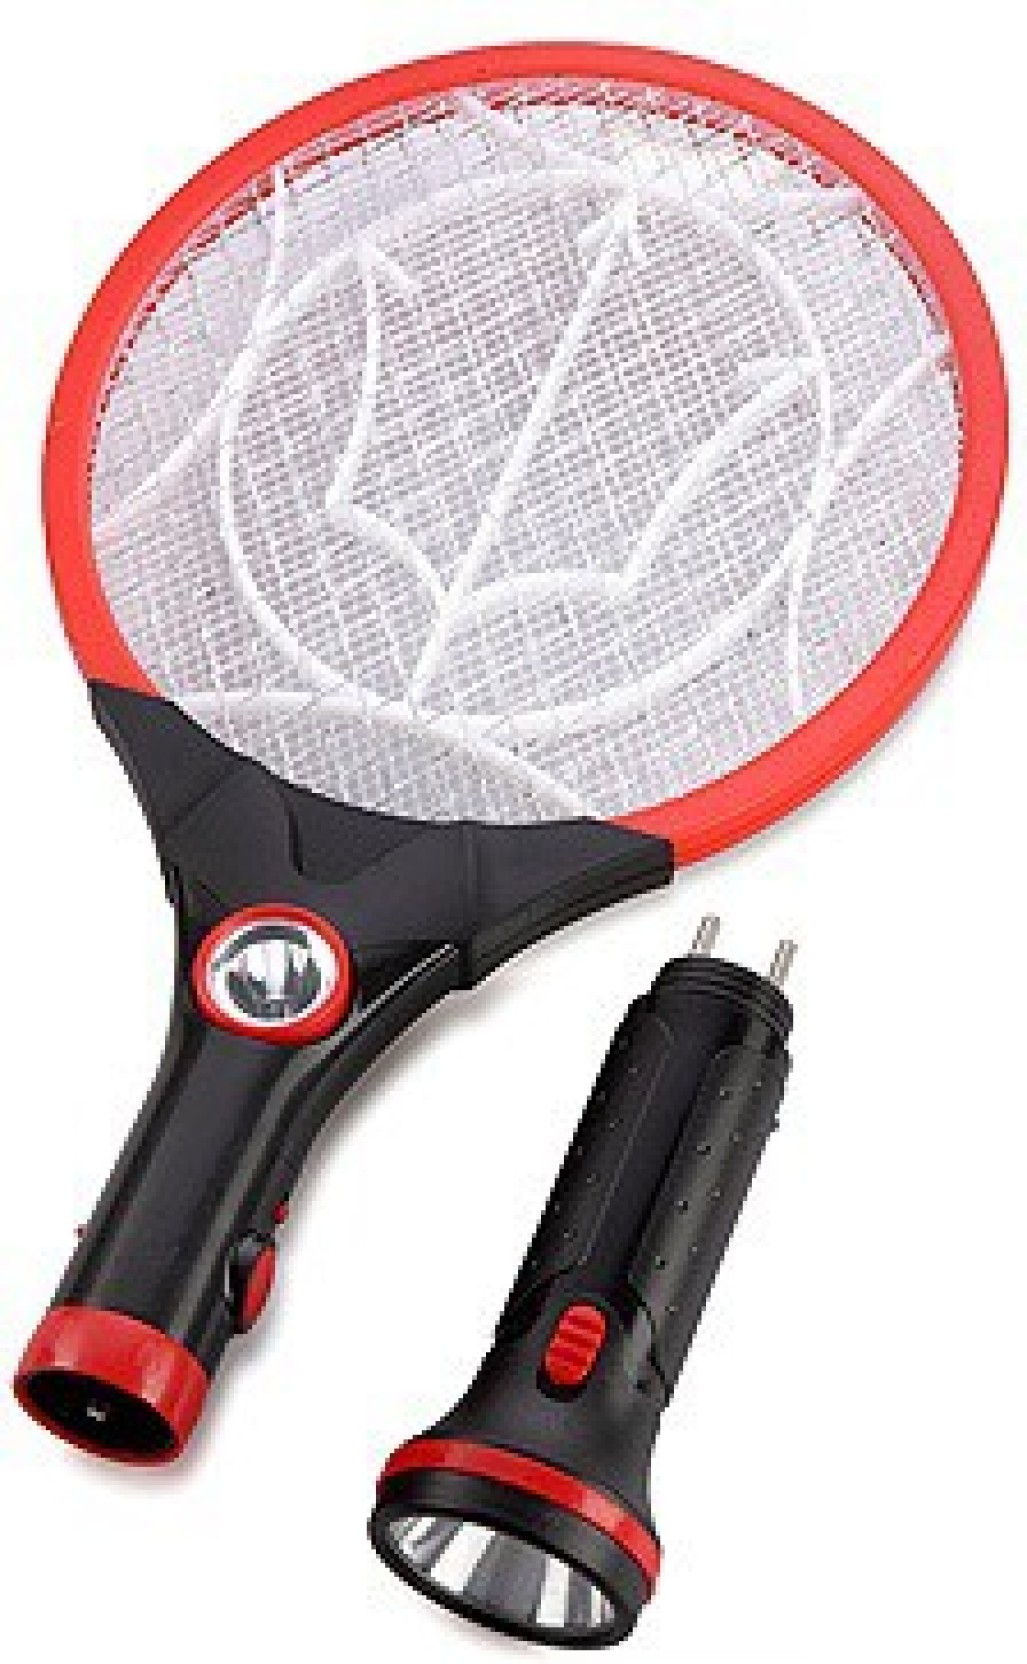 Teeta Rechargeable Mosquito Bat With Two Torches Electric Insect Swatter Electronics Hobby On Offer